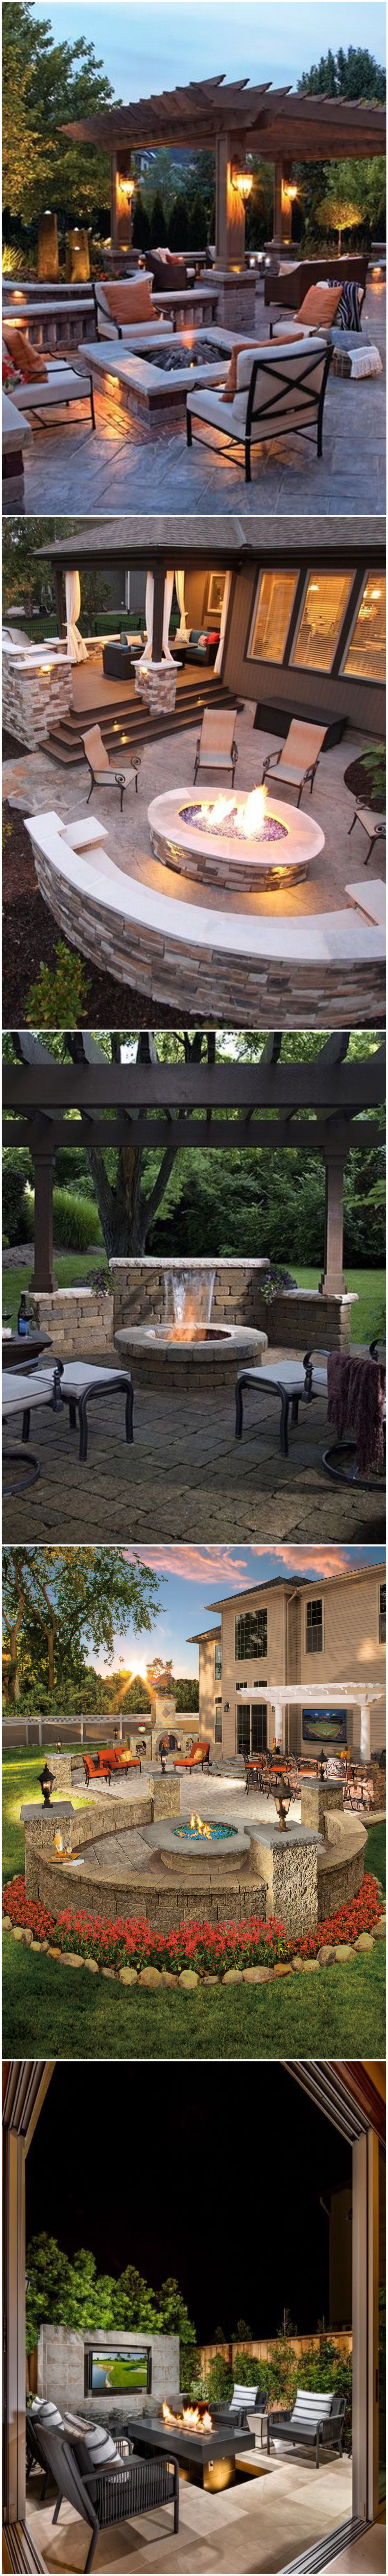 54 Exceptional Outdoor Living Spaces Fire pit designs Outdoor